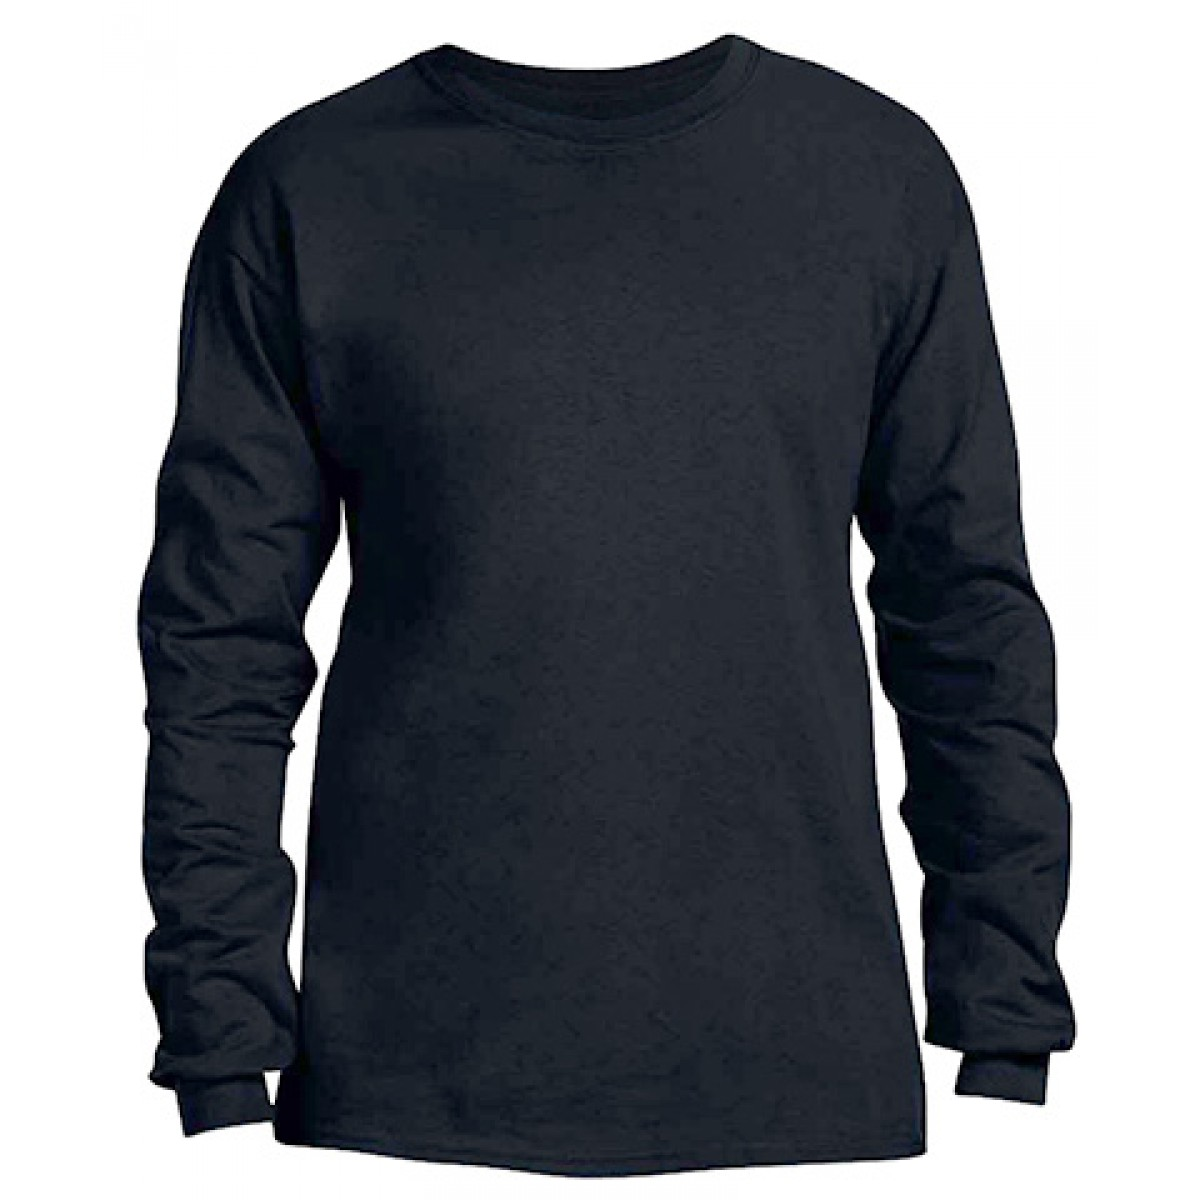 Heavy Cotton Long-Sleeve Adidas Shirt-Black-L